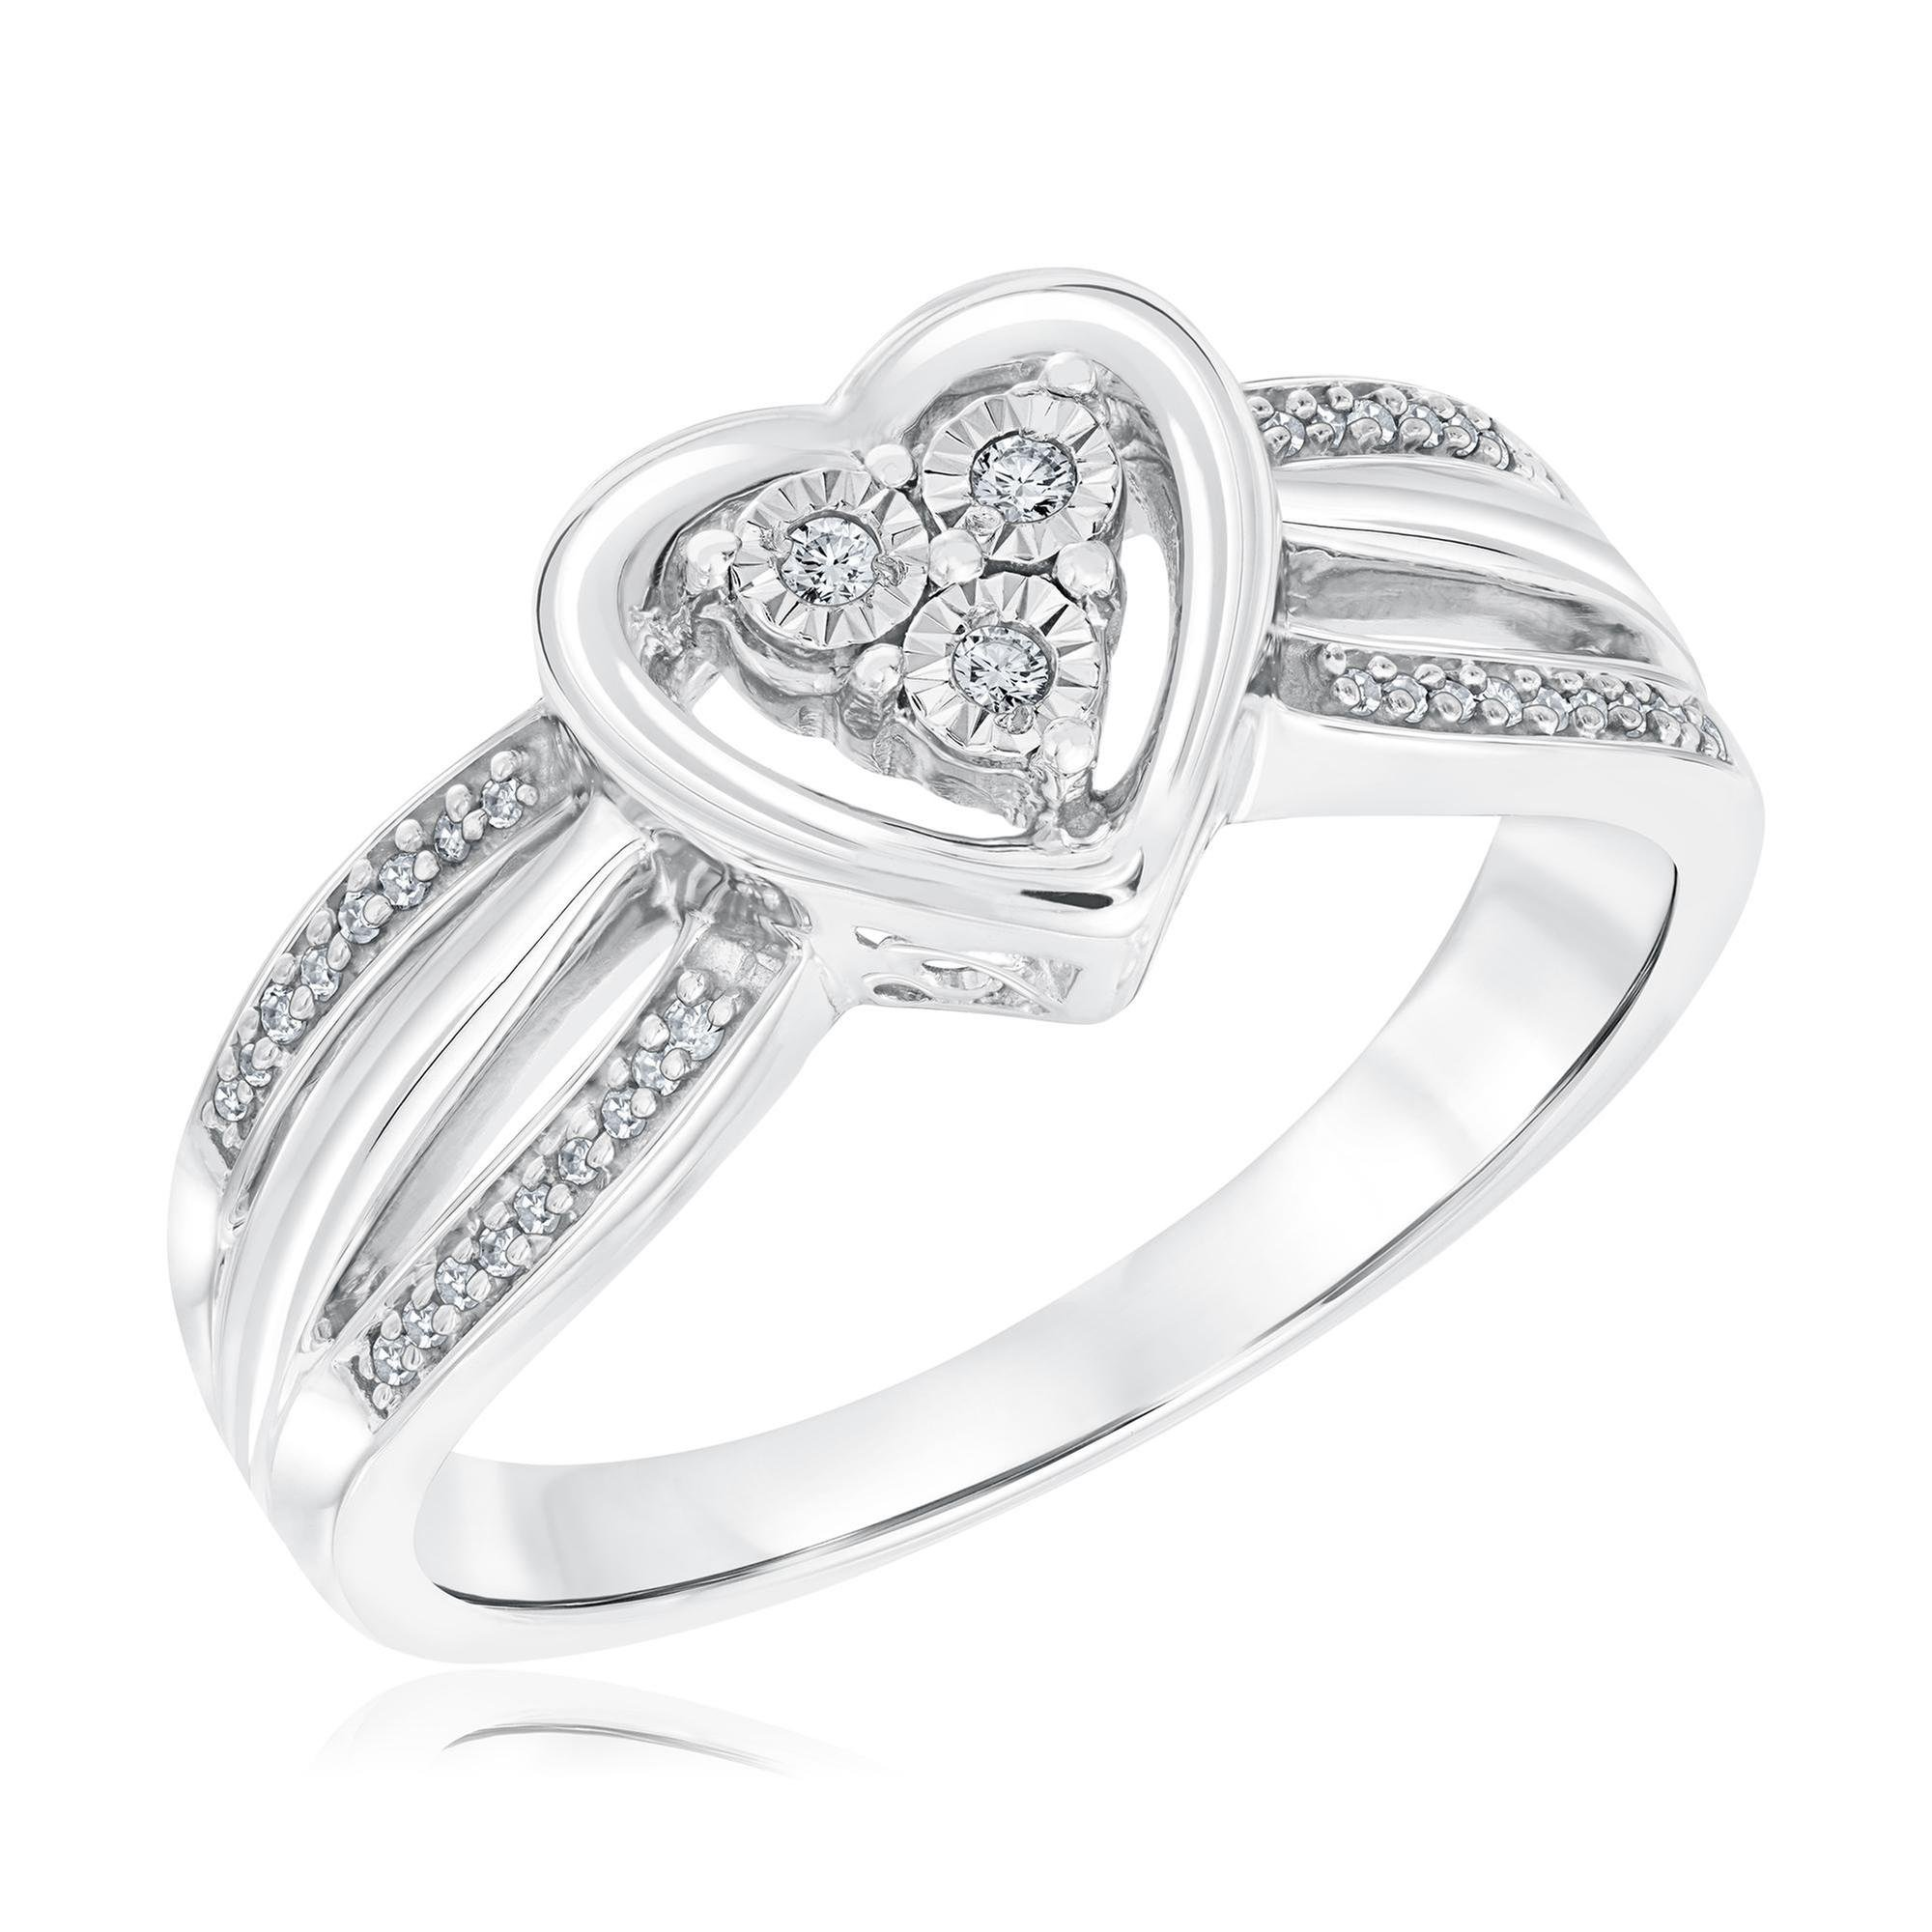 Sterling Silver Diamond Heart and Three Row Promise Ring 1/15ctw - Size 8